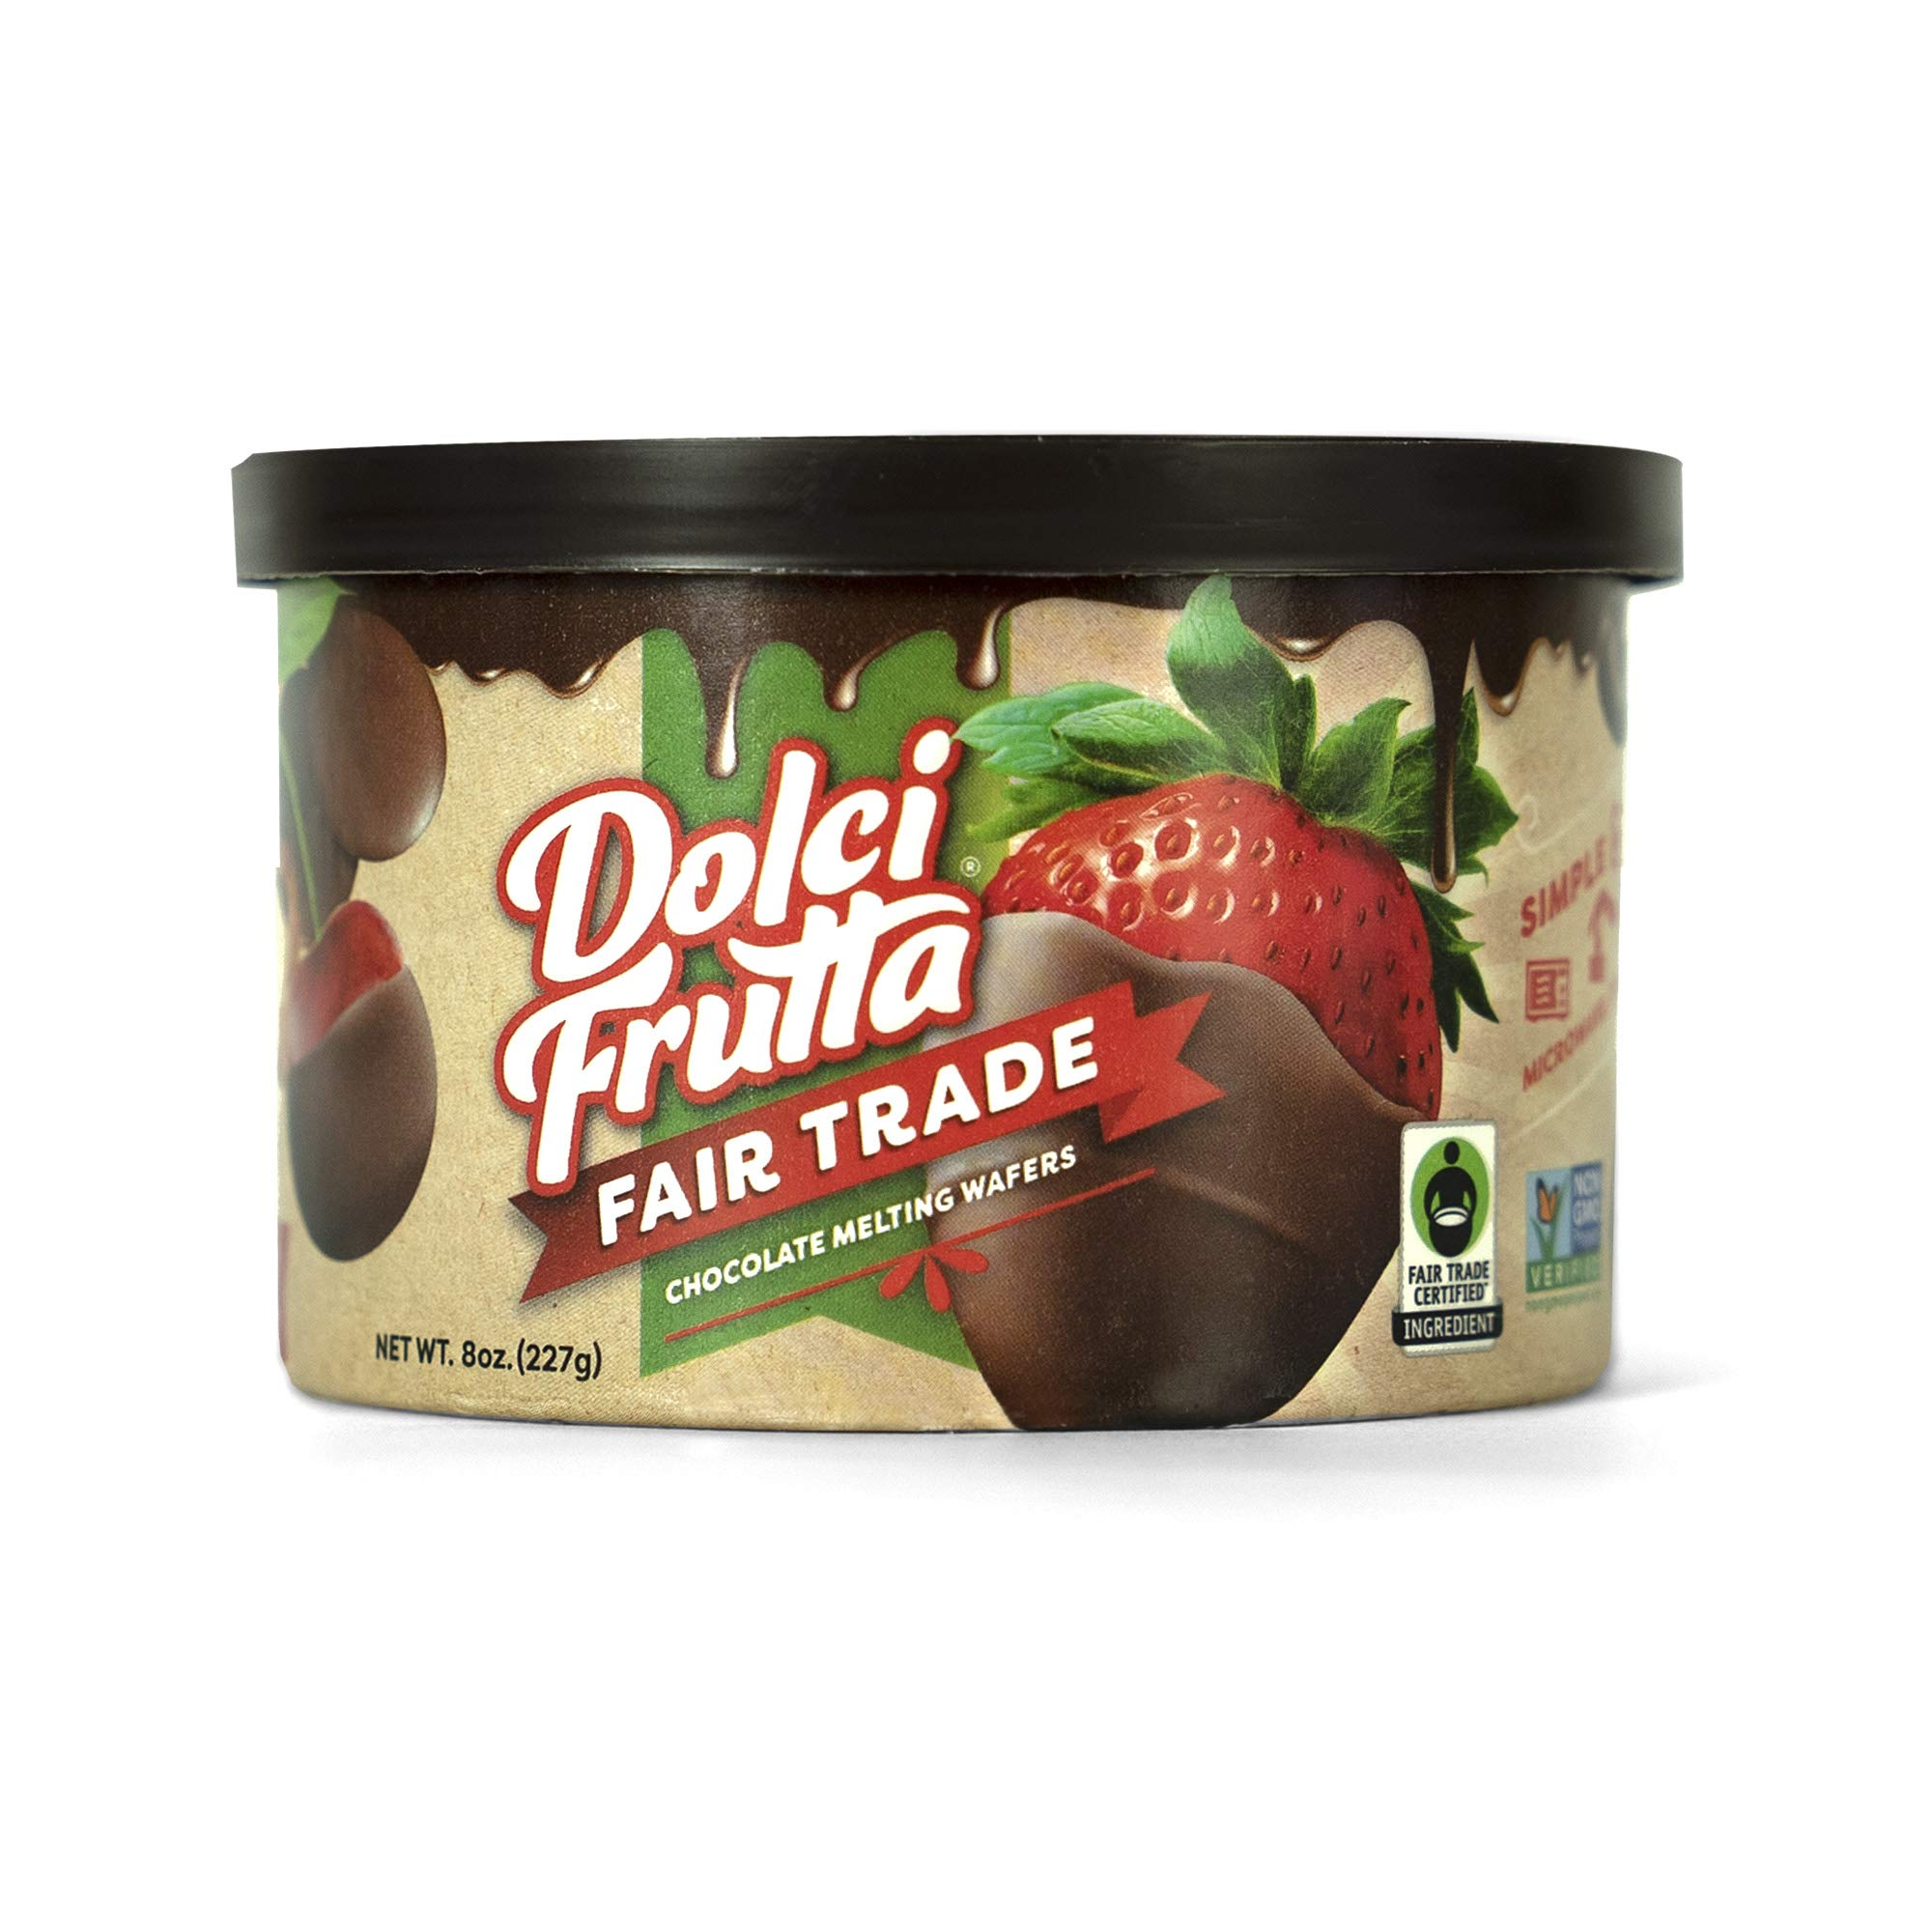 Dolci Frutta Fair Trade Chocolate Shell, Sustainably Sourced, Nut-Free, Gluten-Free, 8oz, Pack of 2